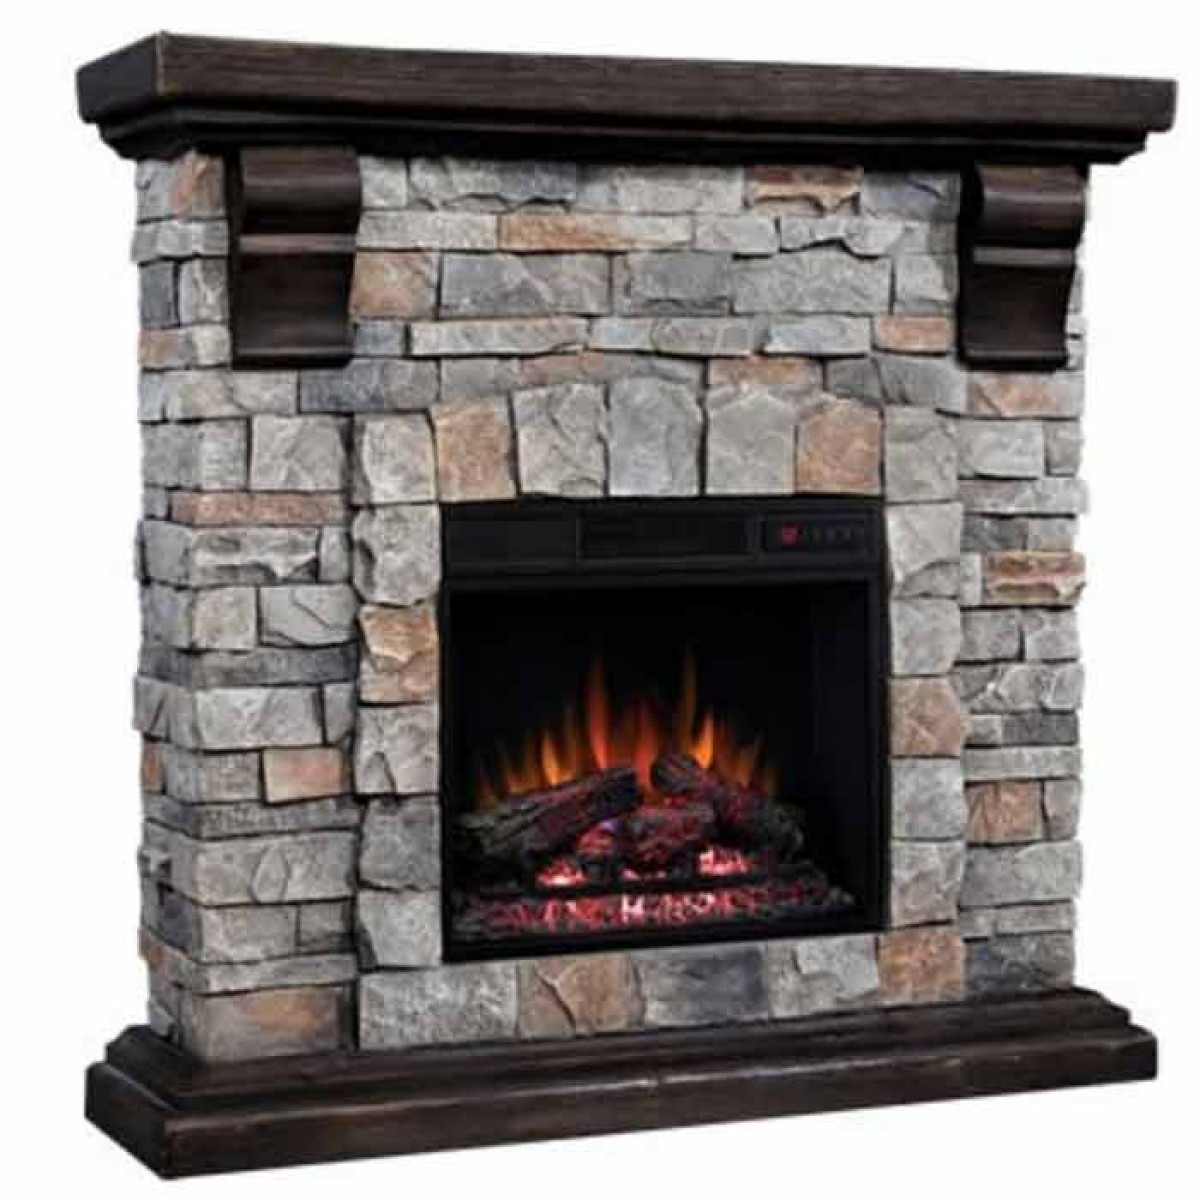 "Find discount prices on the Classic Flame 18"" Electric Insert & Pioneer Mantel Set and other Classic Flame products at iBuyfireplaces.com."